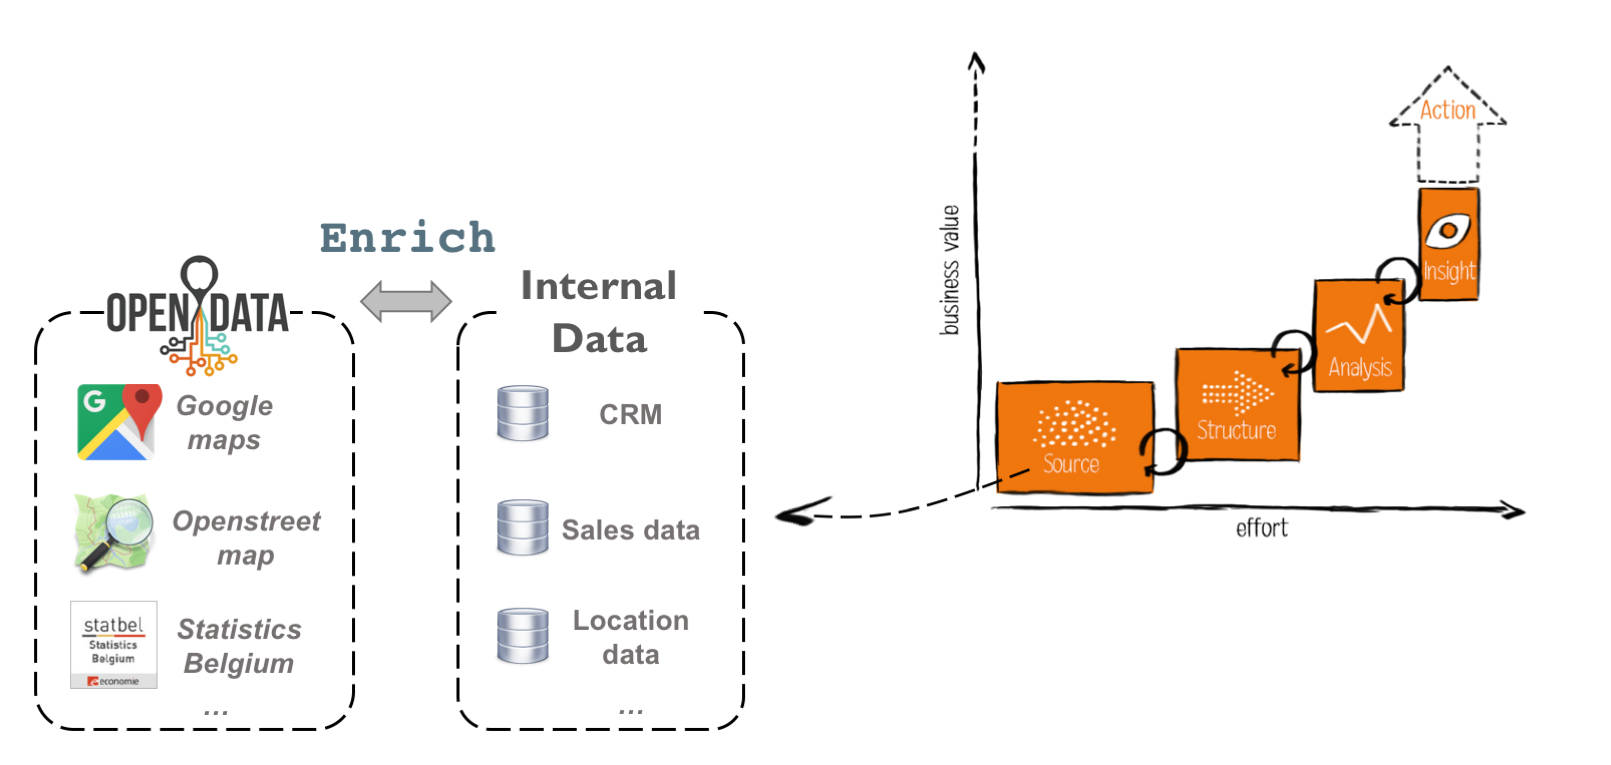 Analytics as an incremental, iterative process to get useful insights form data. Enriching your own data